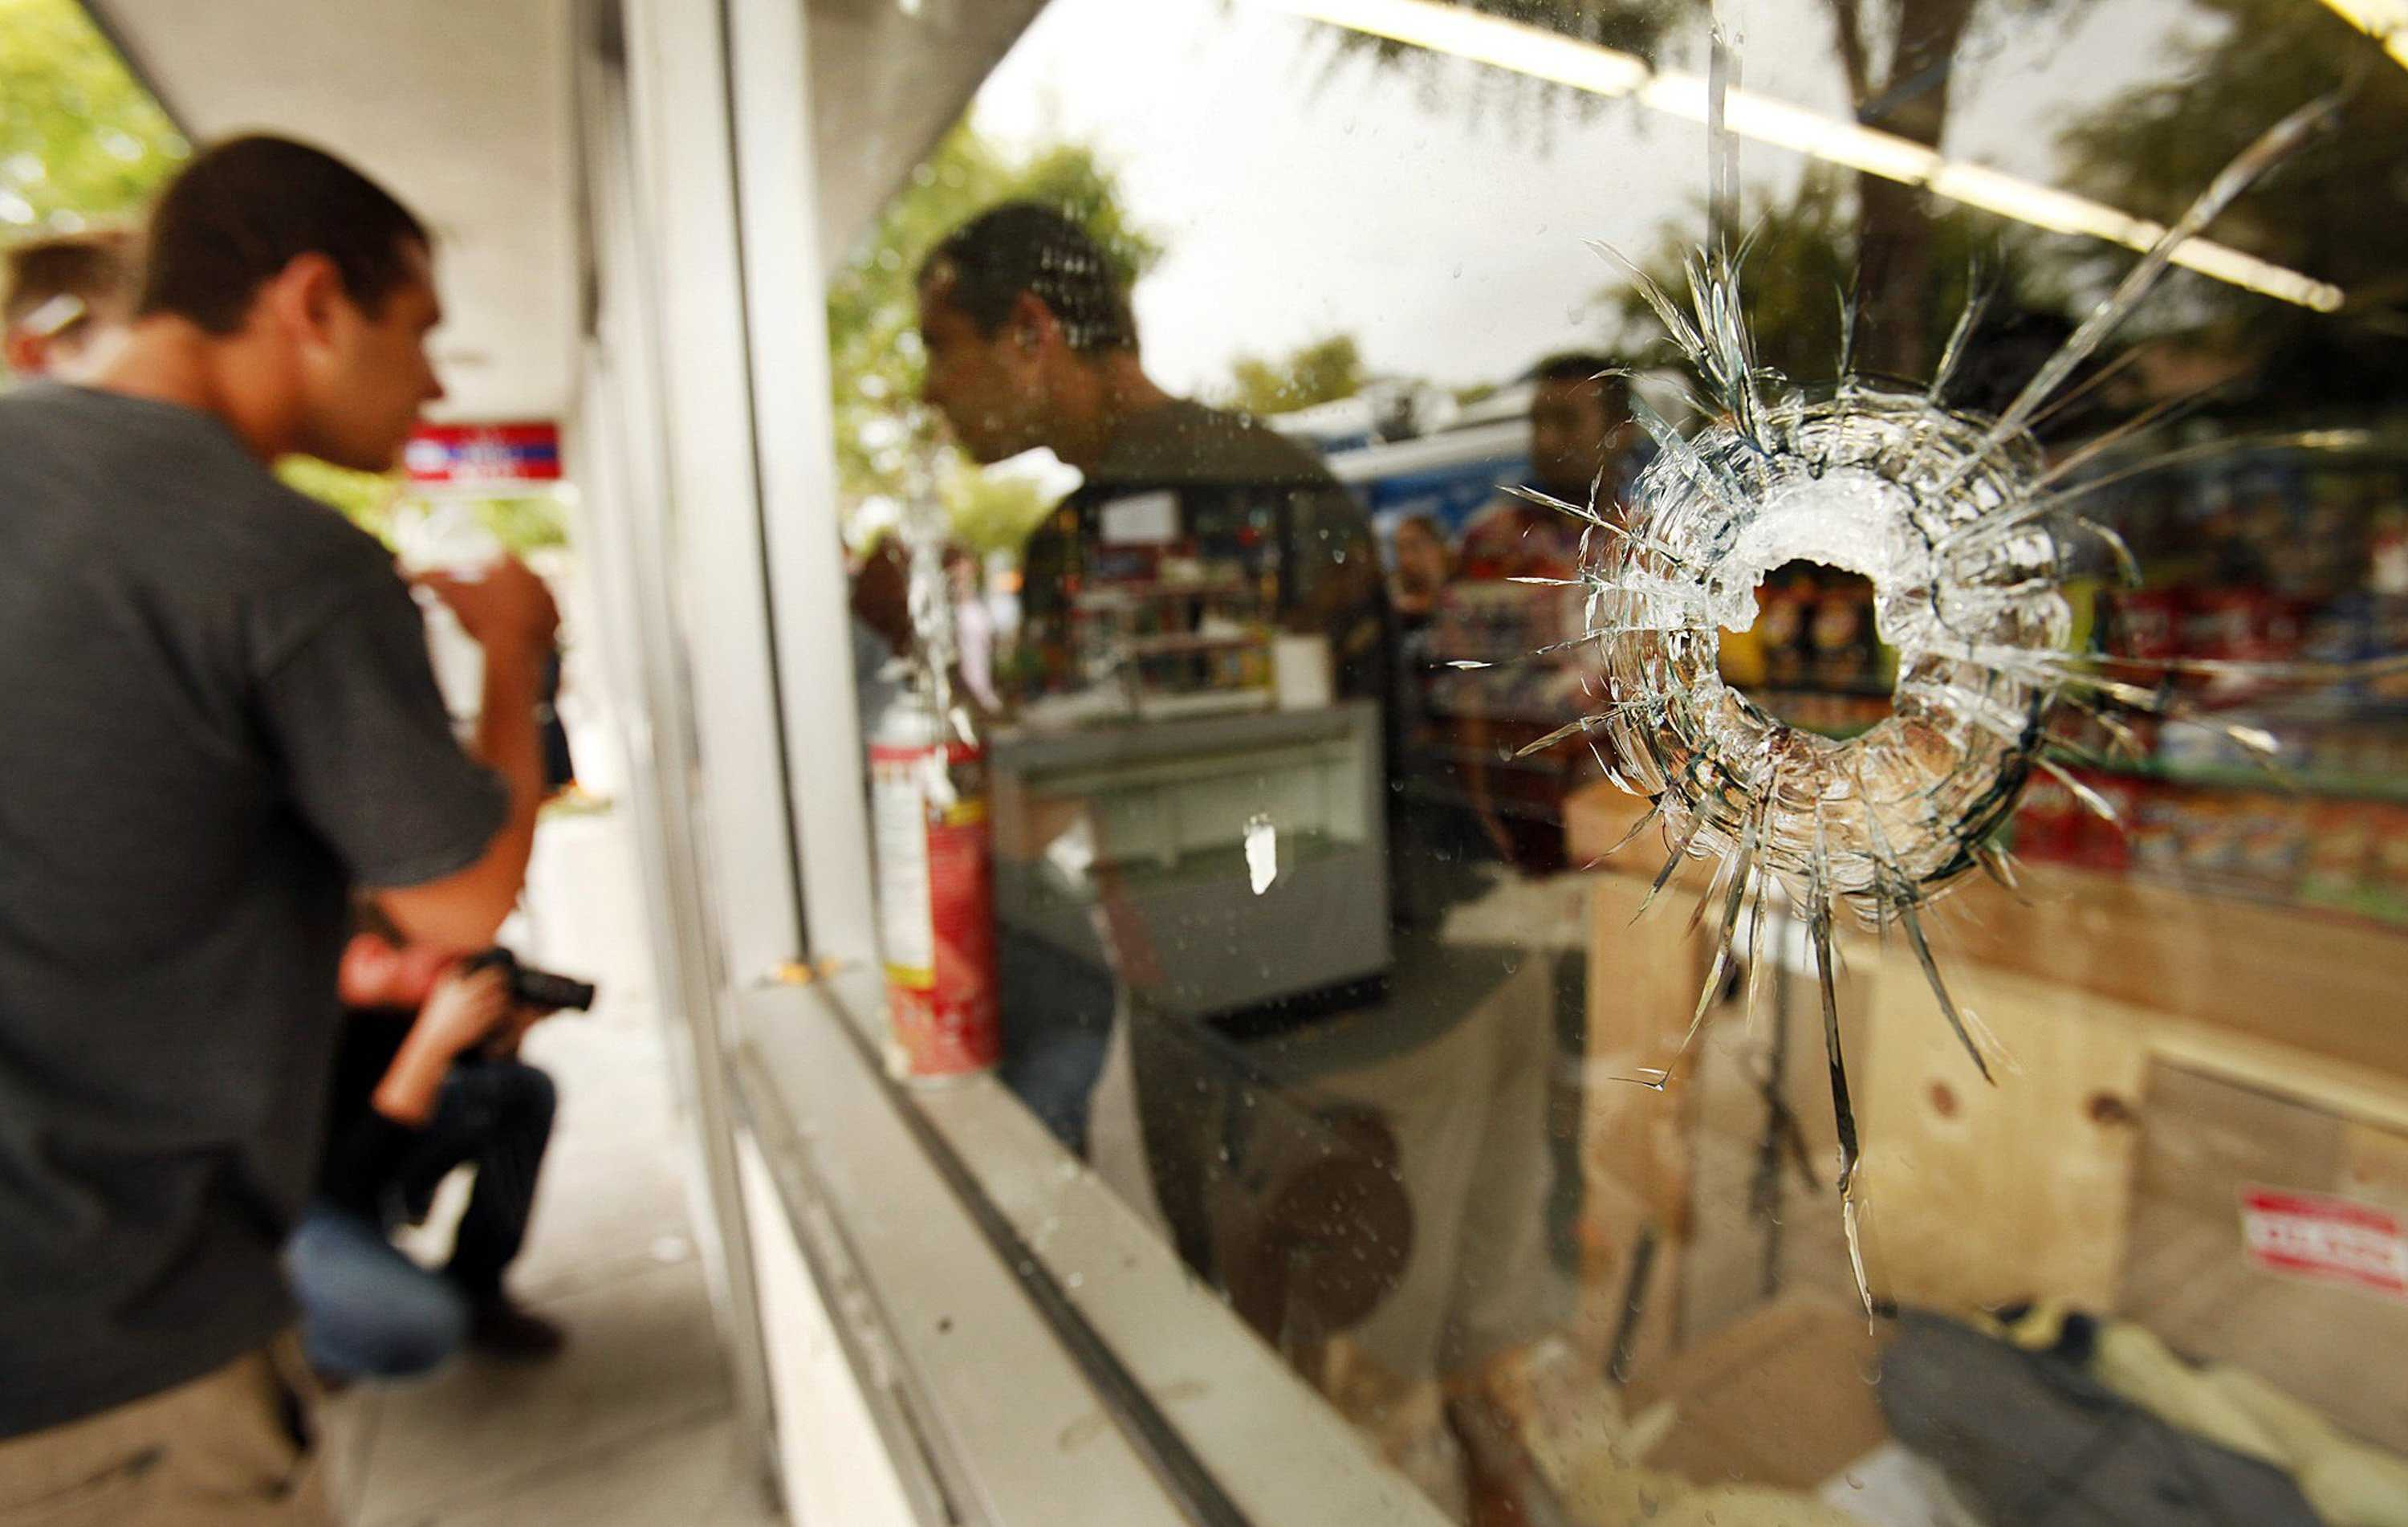 Students look through a window marked with bullet holes at the IV Deli in the Isla Vista neighborhood of Santa Barbara, Calif., Saturday, May 24, 2014. A shooting rampage on Friday left seven dead near the University of California, Santa Barbara. (Al Seib/Los Angeles Times/MCT)